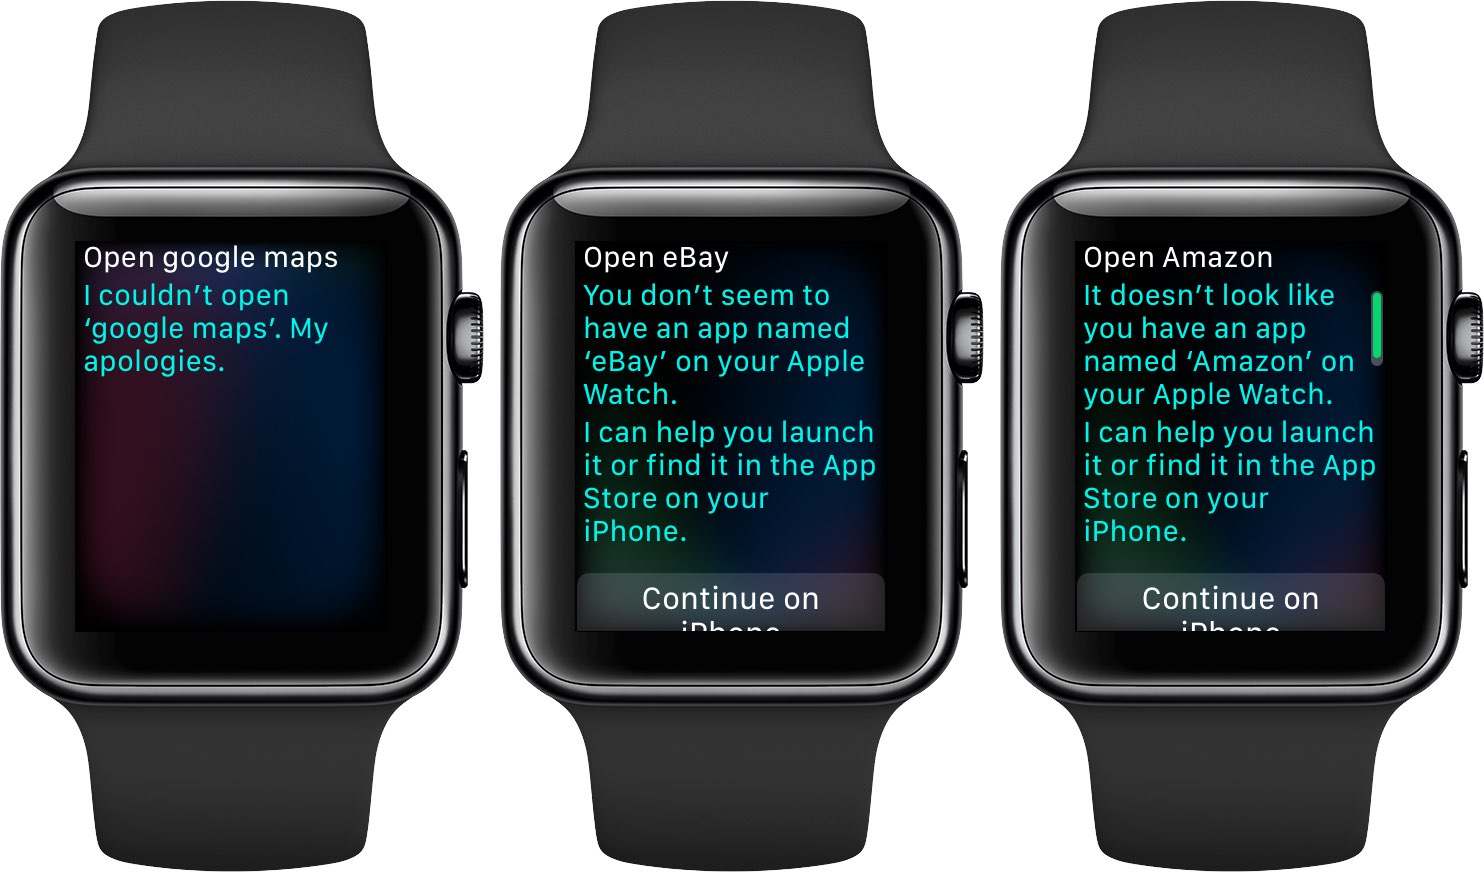 Google says Apple Watch support will be returning to Maps